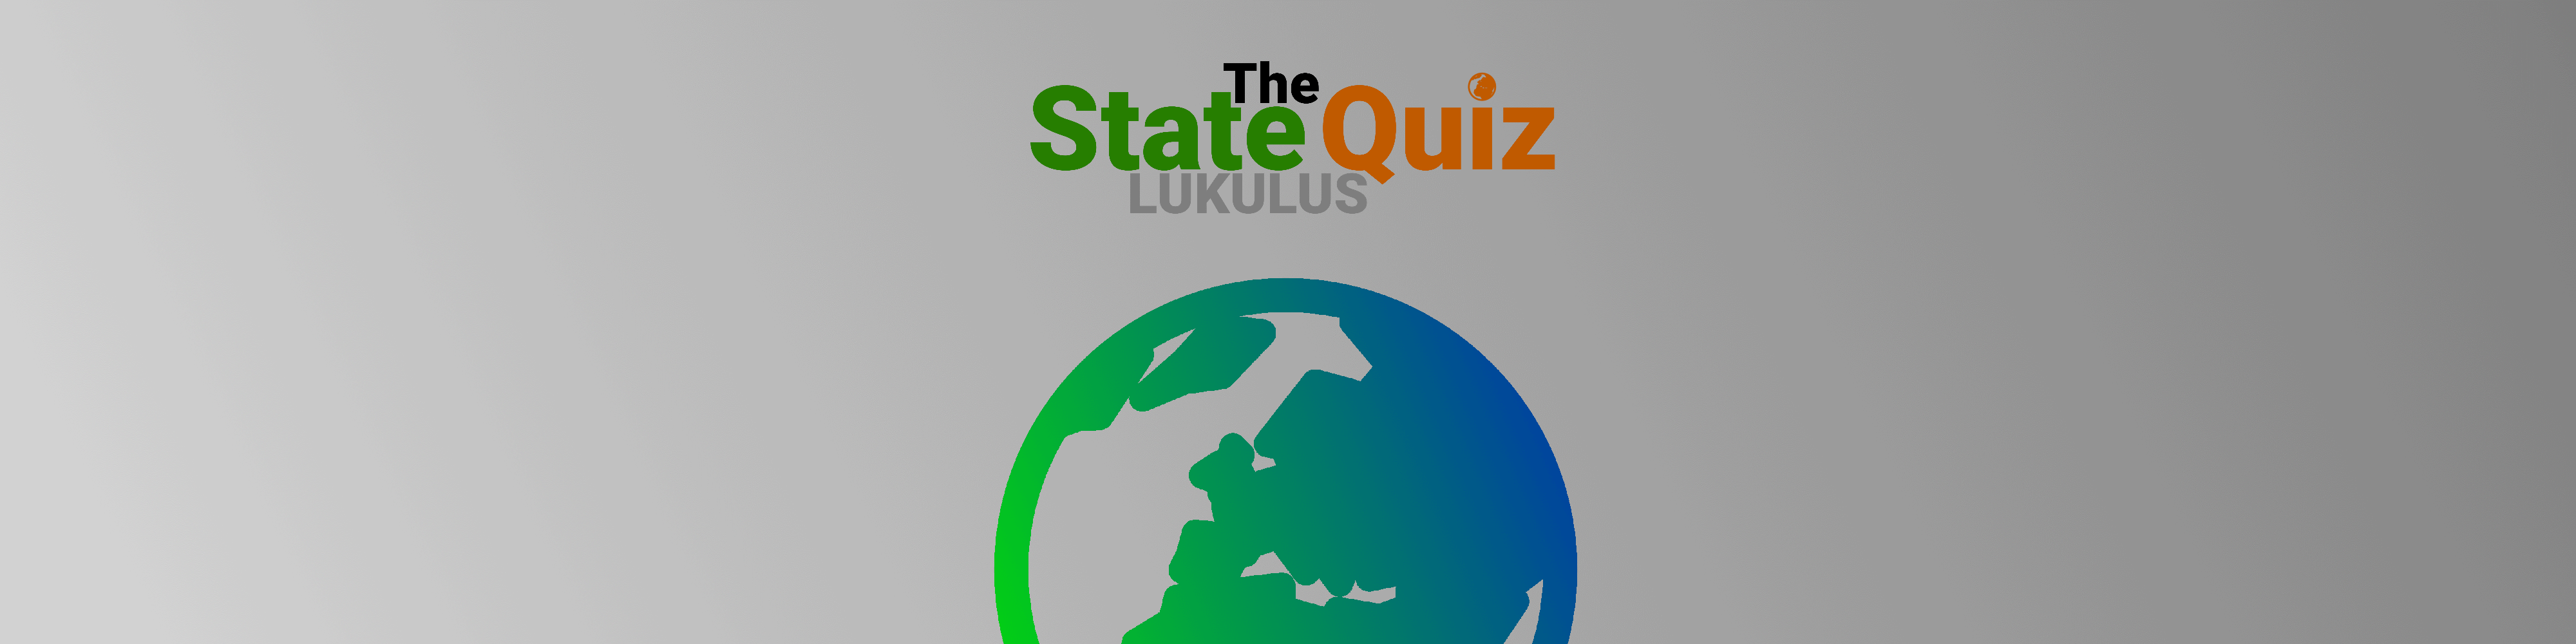 The State Quiz